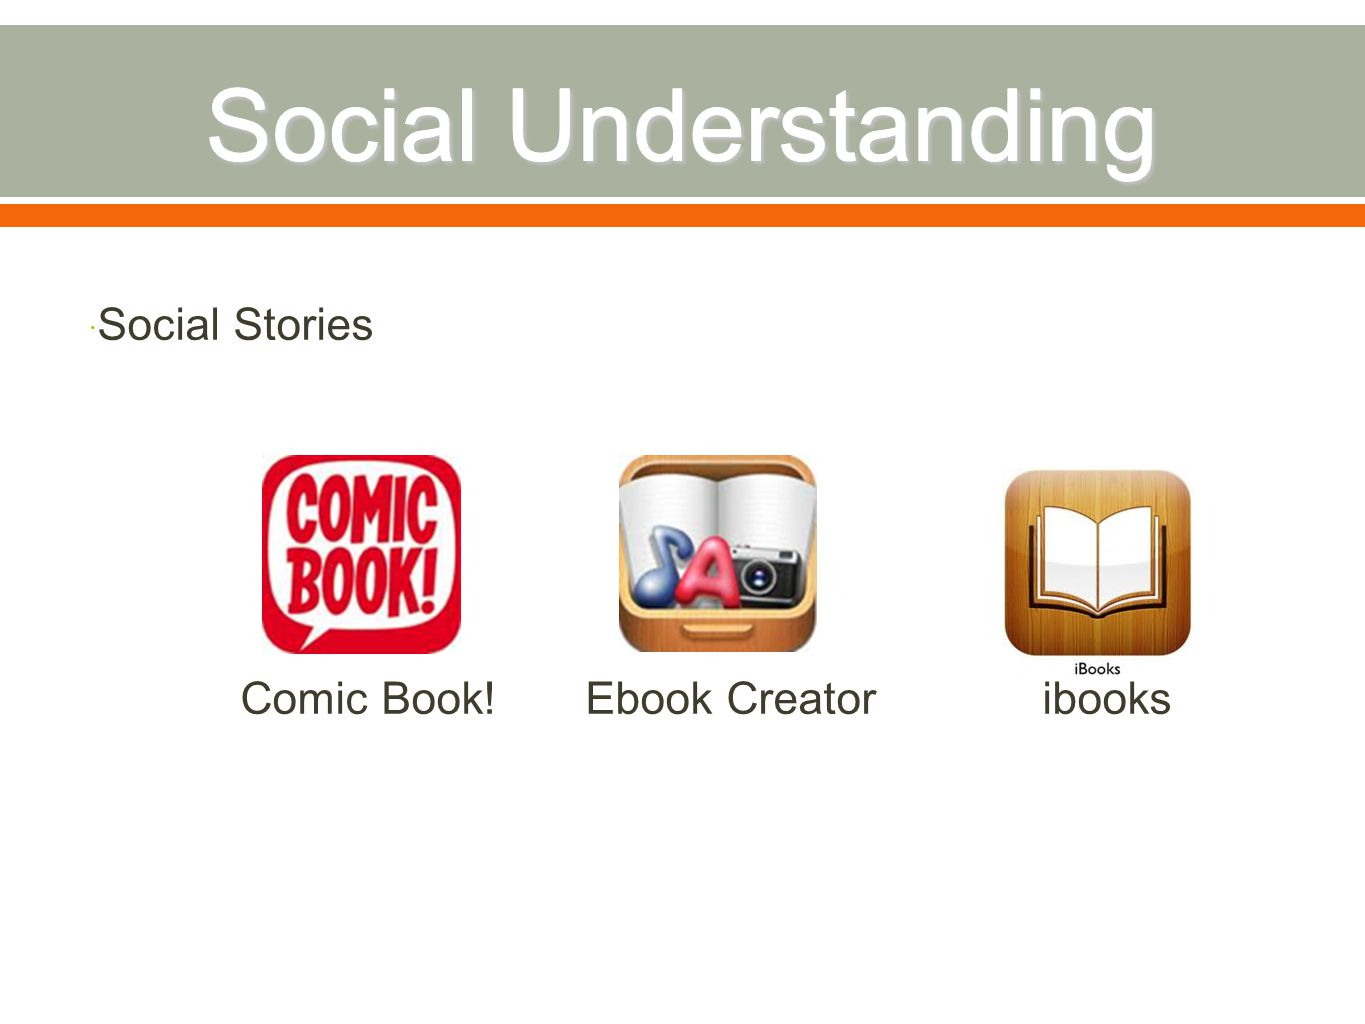  Social Stories Comic Book! Ebook Creatoribooks